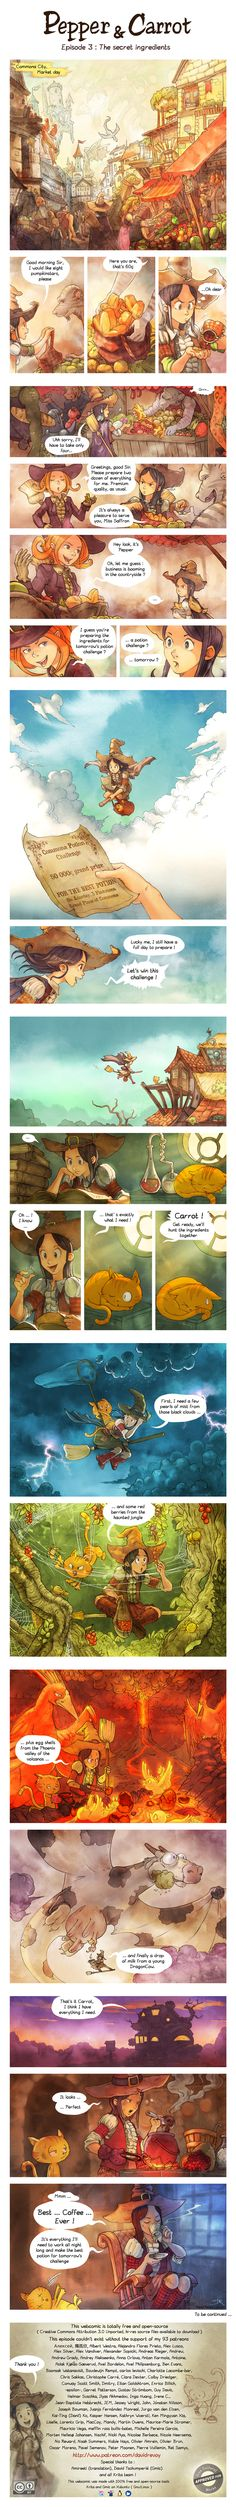 'Pepper and Carrot' Ep 3 : The secret ingredients by Deevad.deviantart.com on @DeviantArt